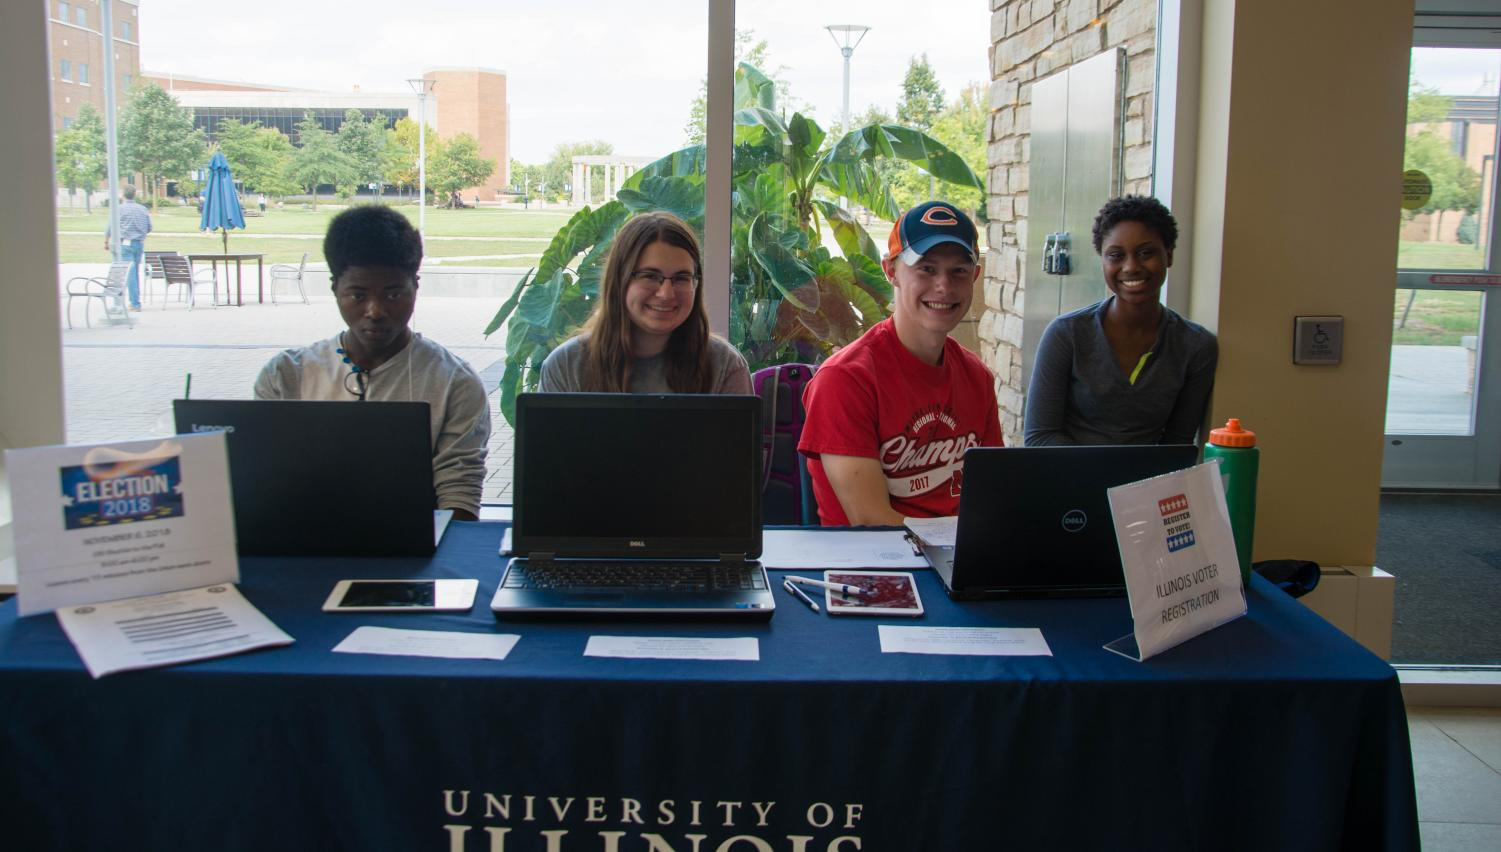 Students register to vote in Student Union, talk importance of voting